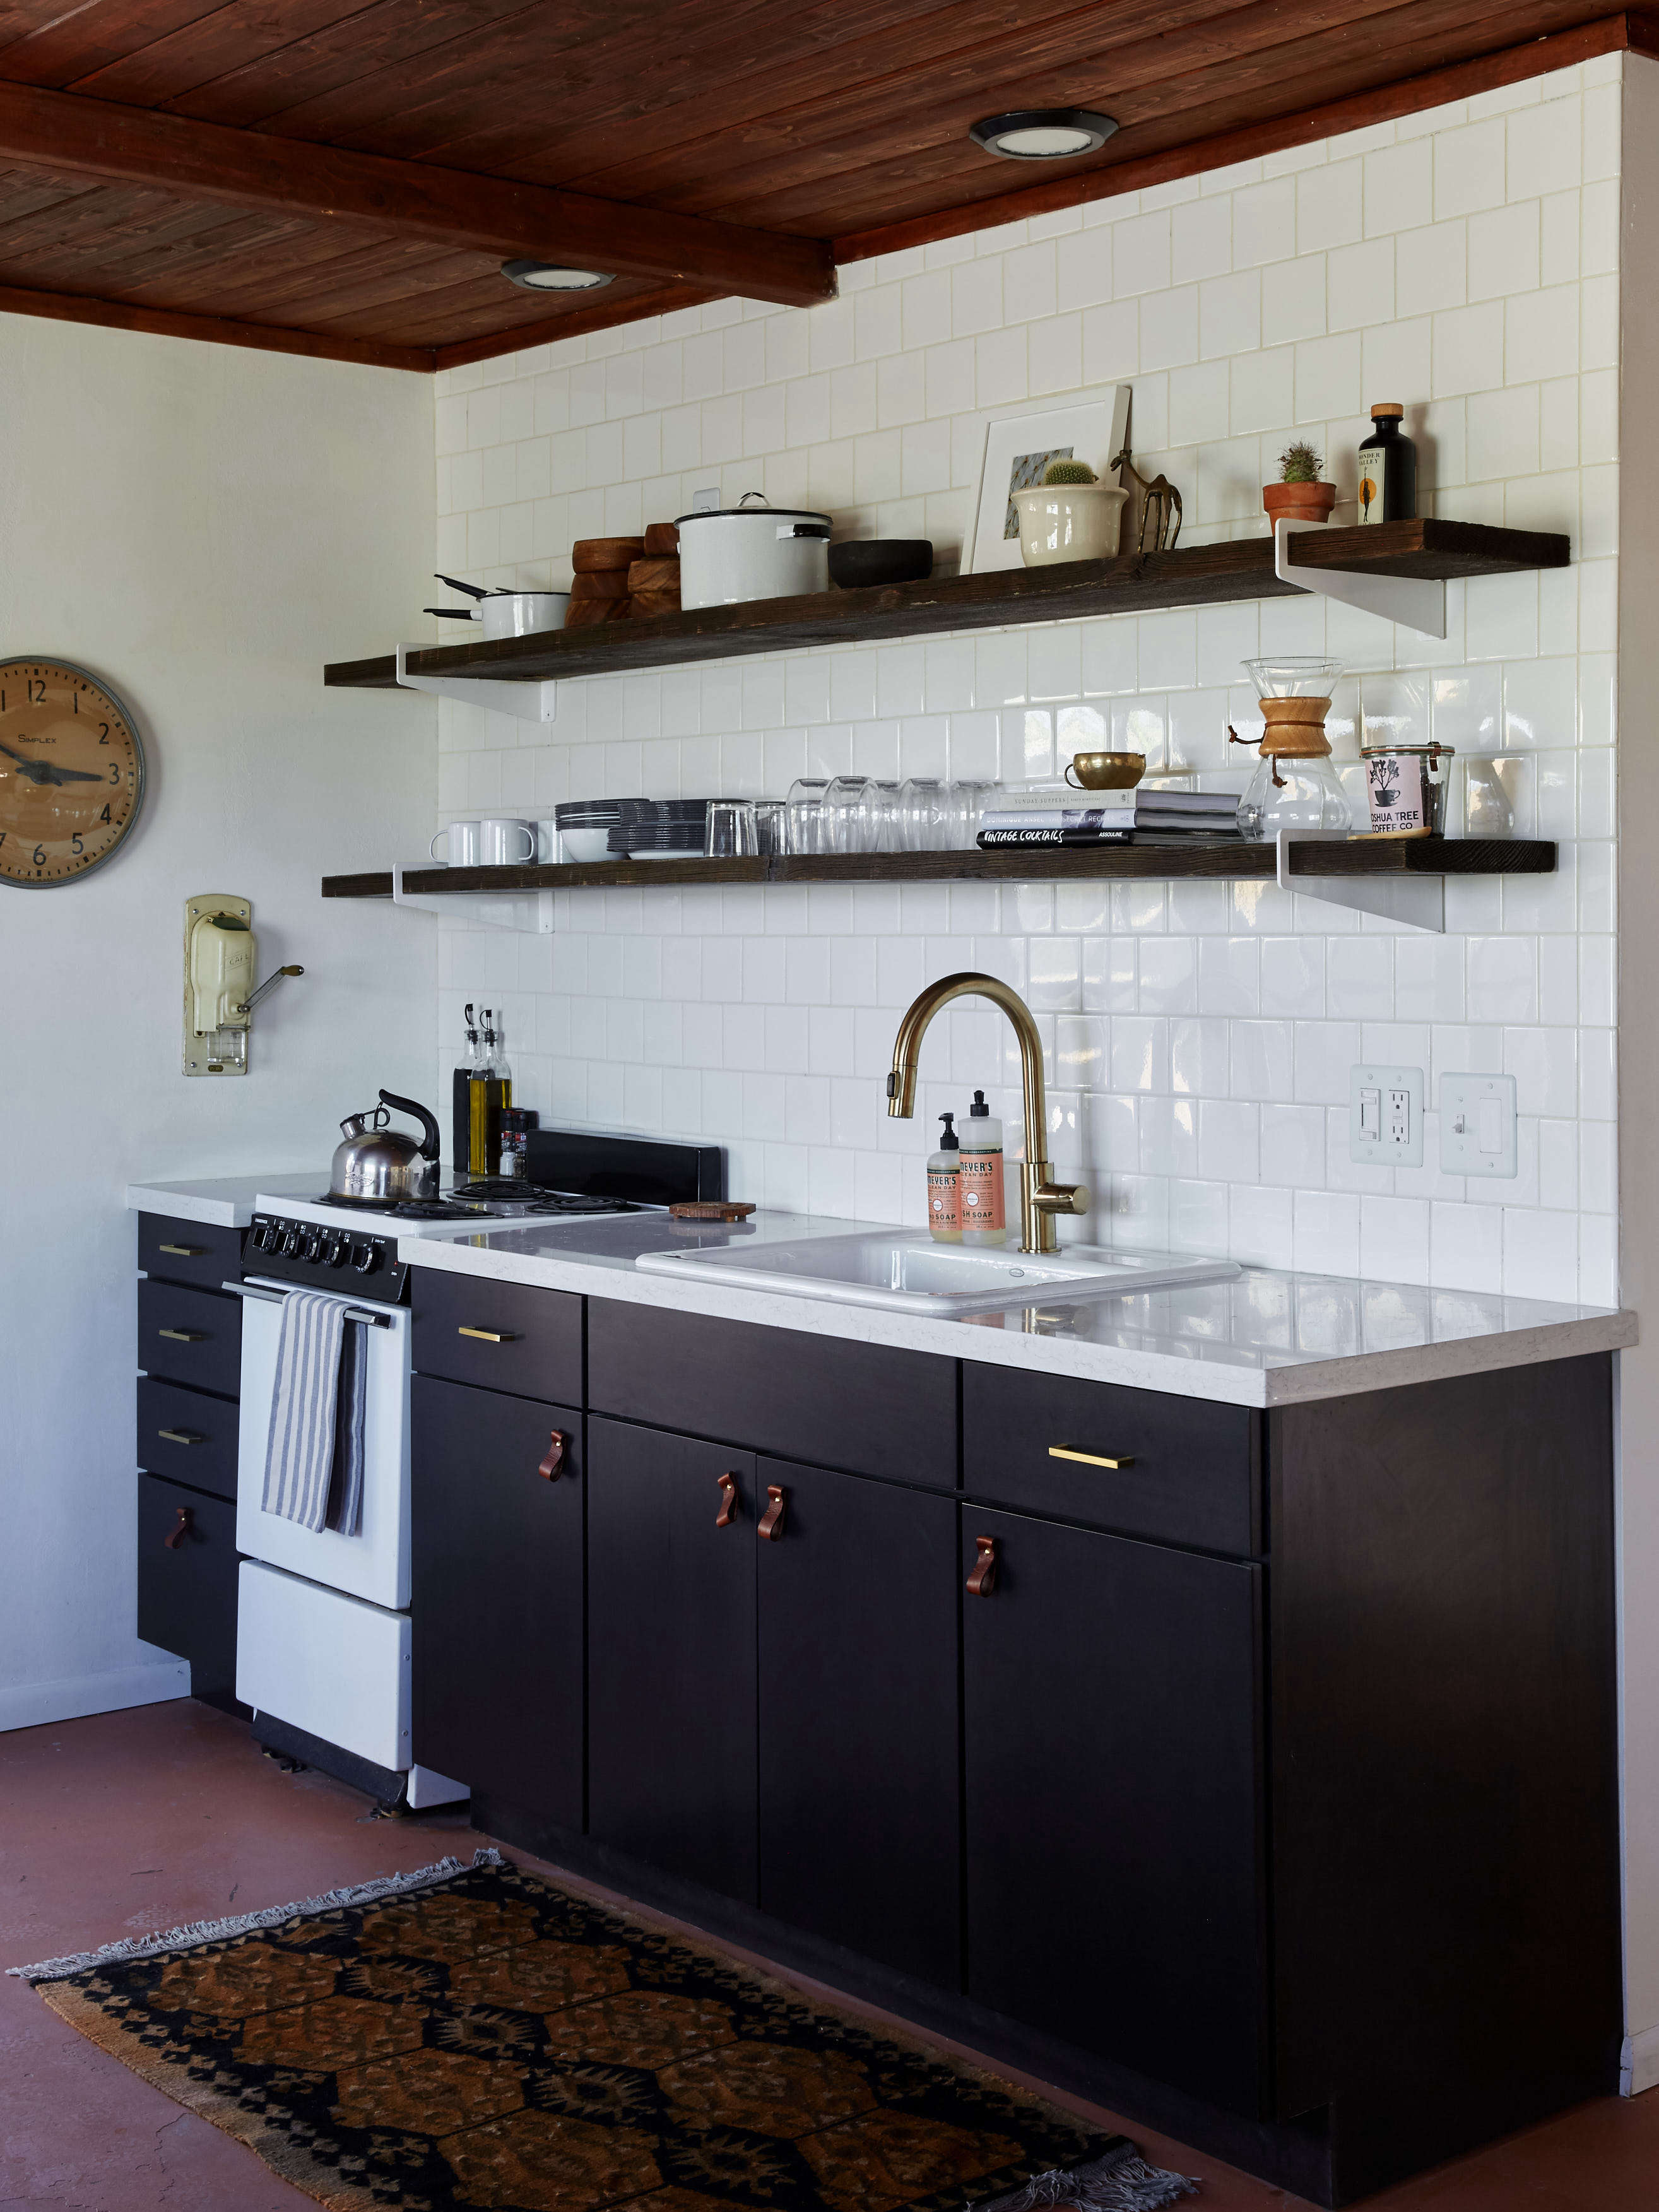 13 Favorite CostConscious Kitchen Remodels from the Remodelista Archives Joshua Tree Casita Airbnb Black Kitchen Cabinets Kate Sears